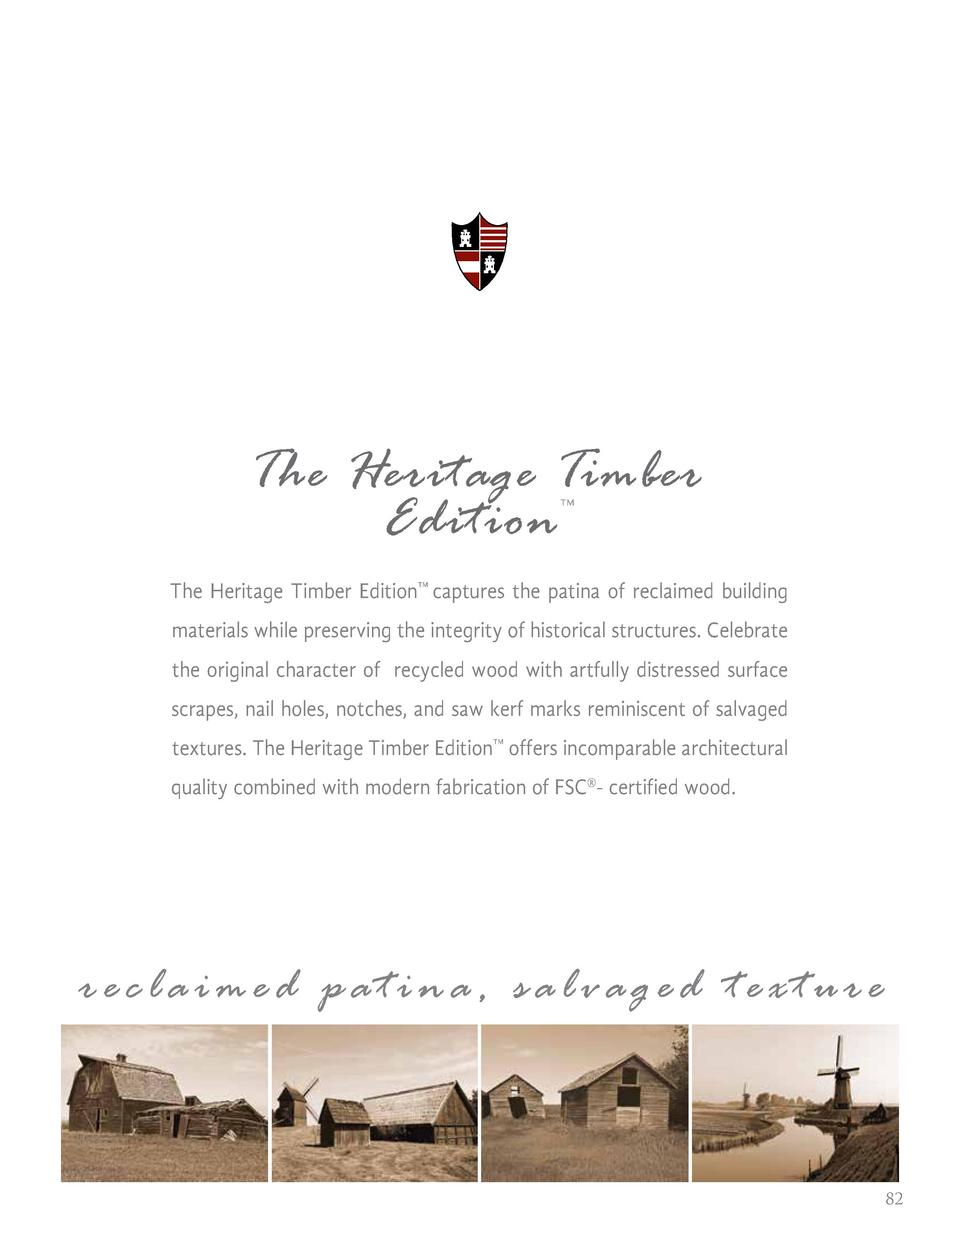 The Heritage Timber Edition      The Heritage Timber Edition    captures the patina of reclaimed building materials while ...